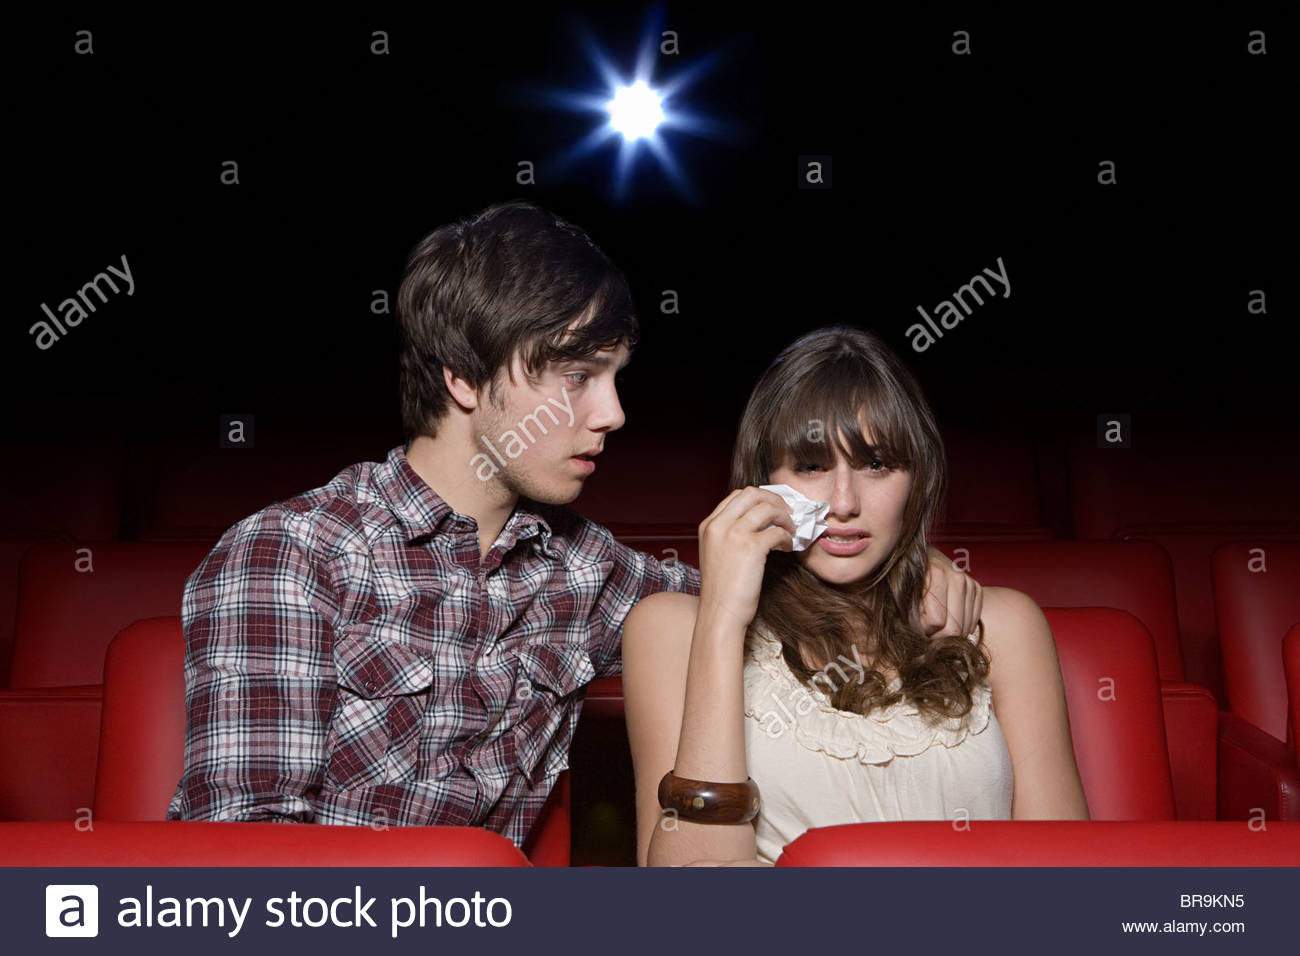 Young couple in the movie theater, both crying - Stock Image